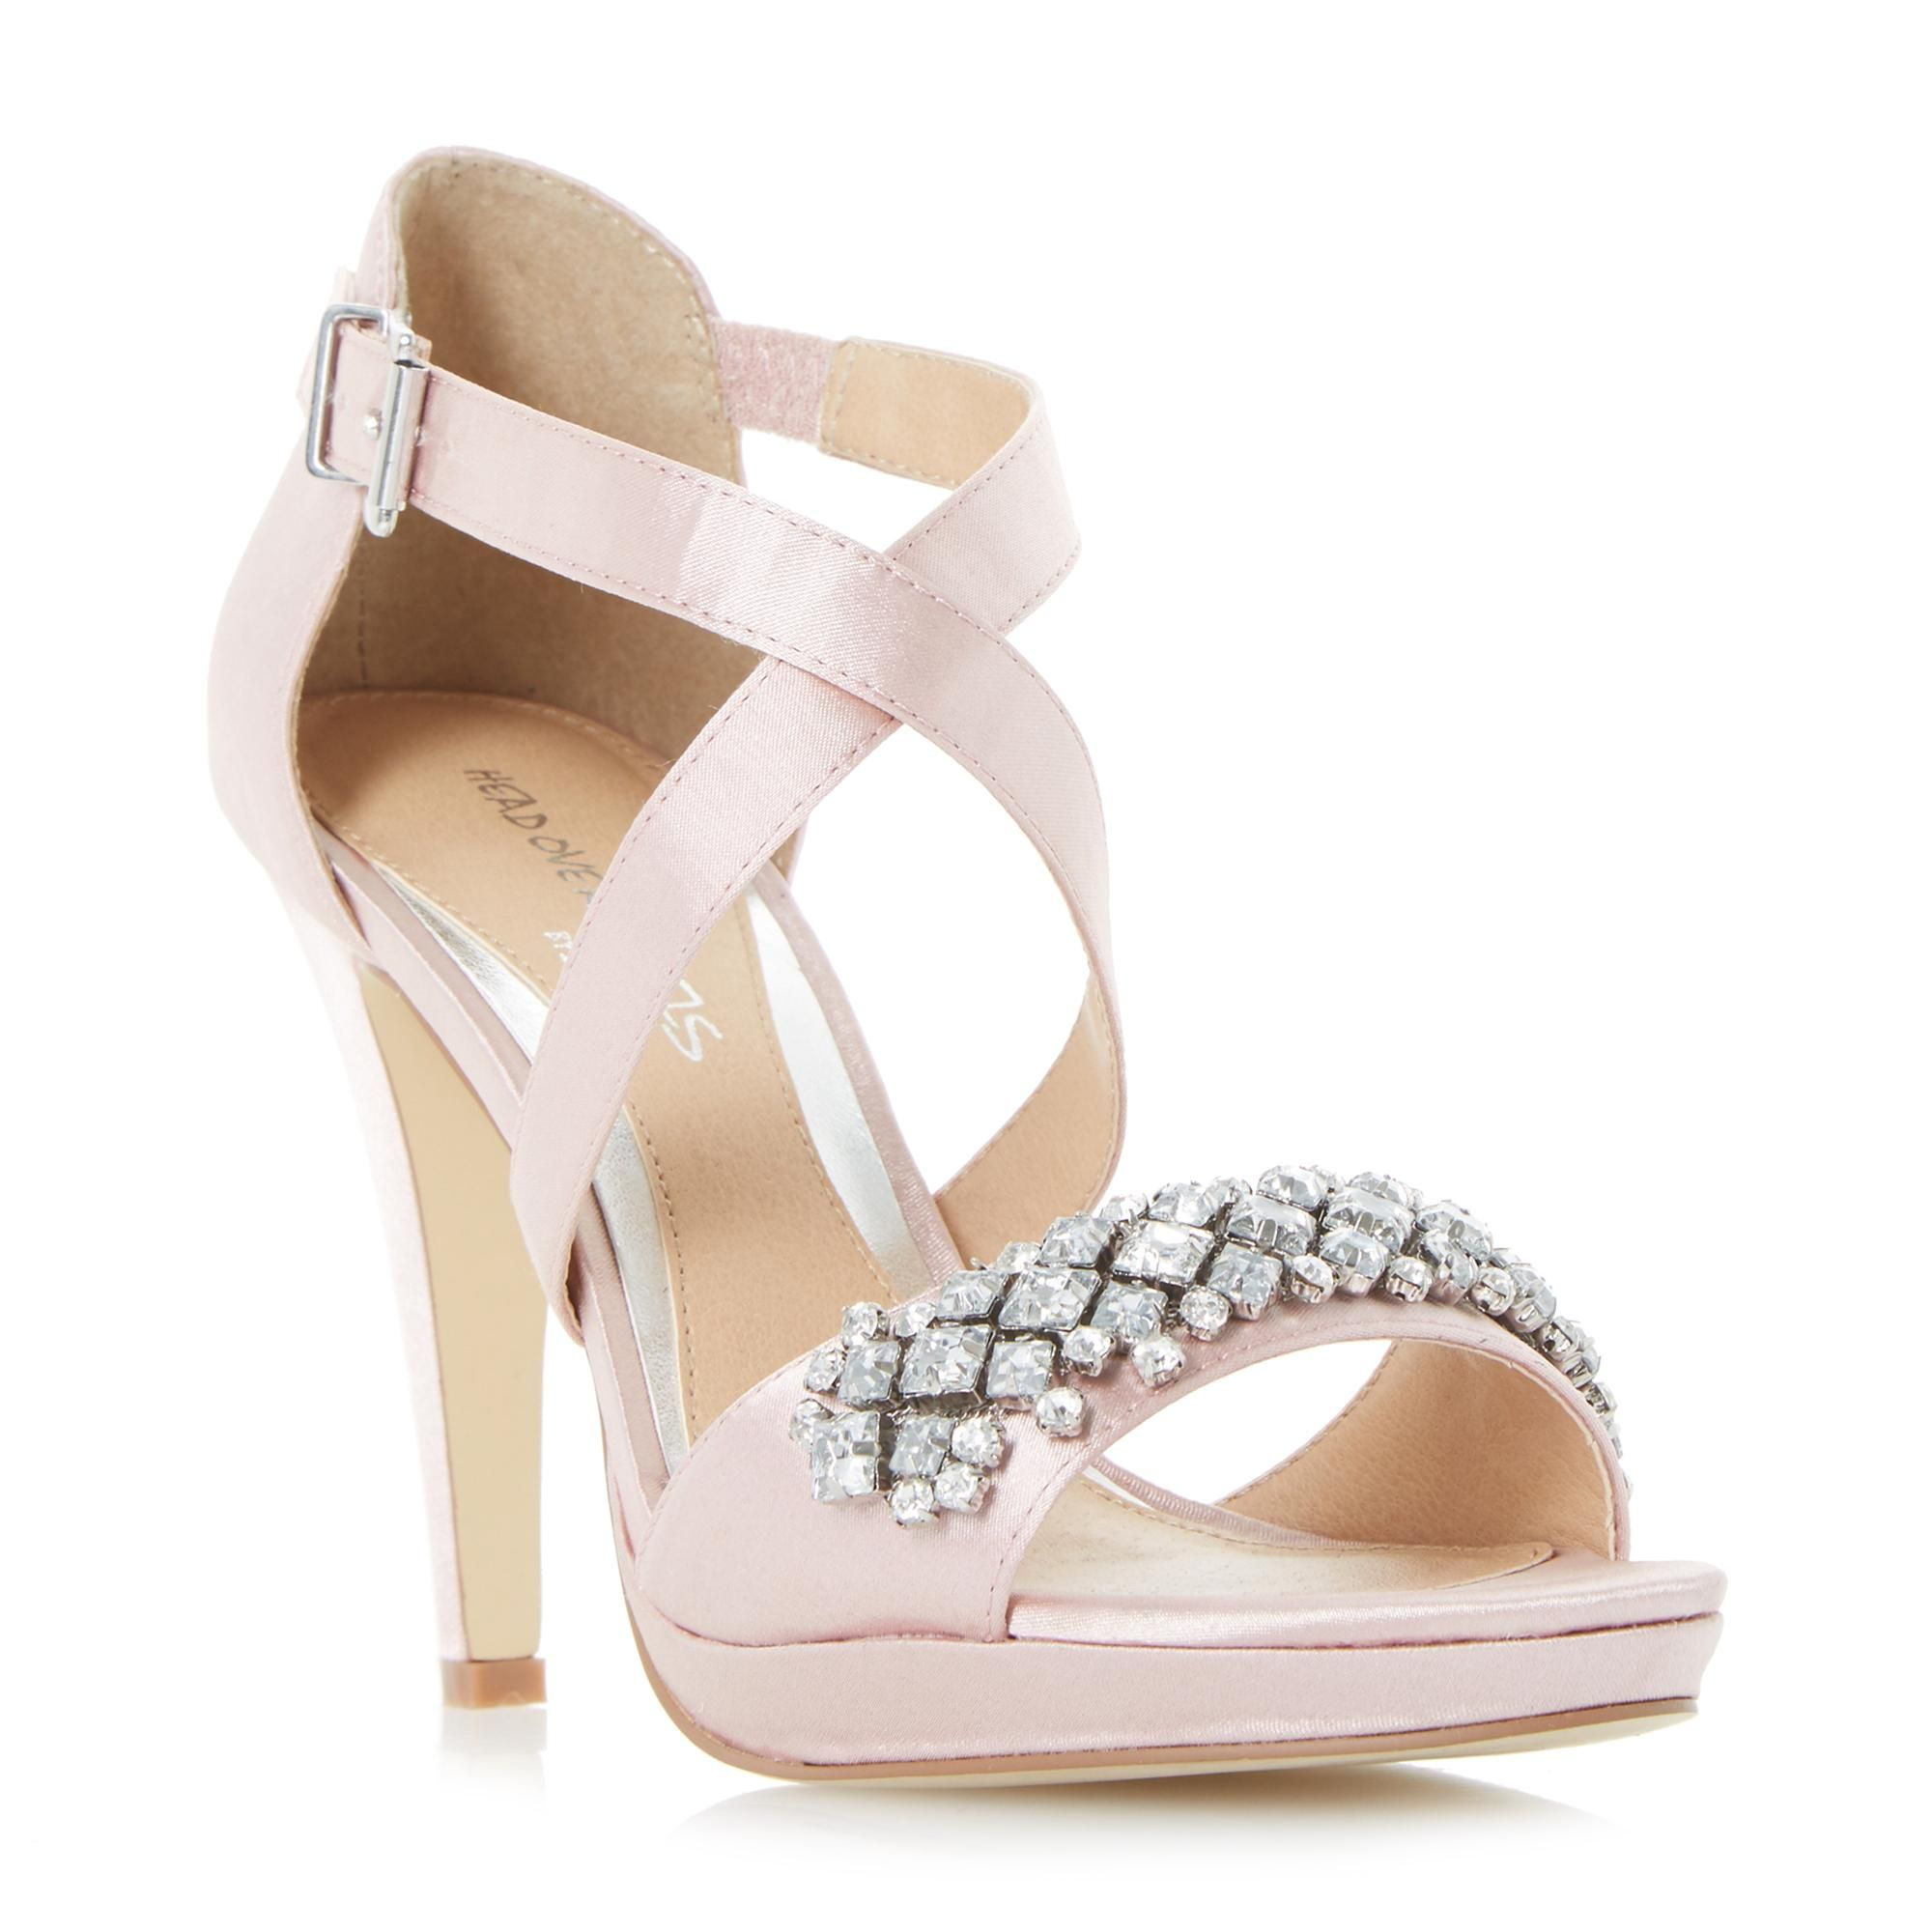 6fdd7a02c08266 HEAD OVER HEELS MAISY - Jewelled Strap High Heeled Sandal - nude